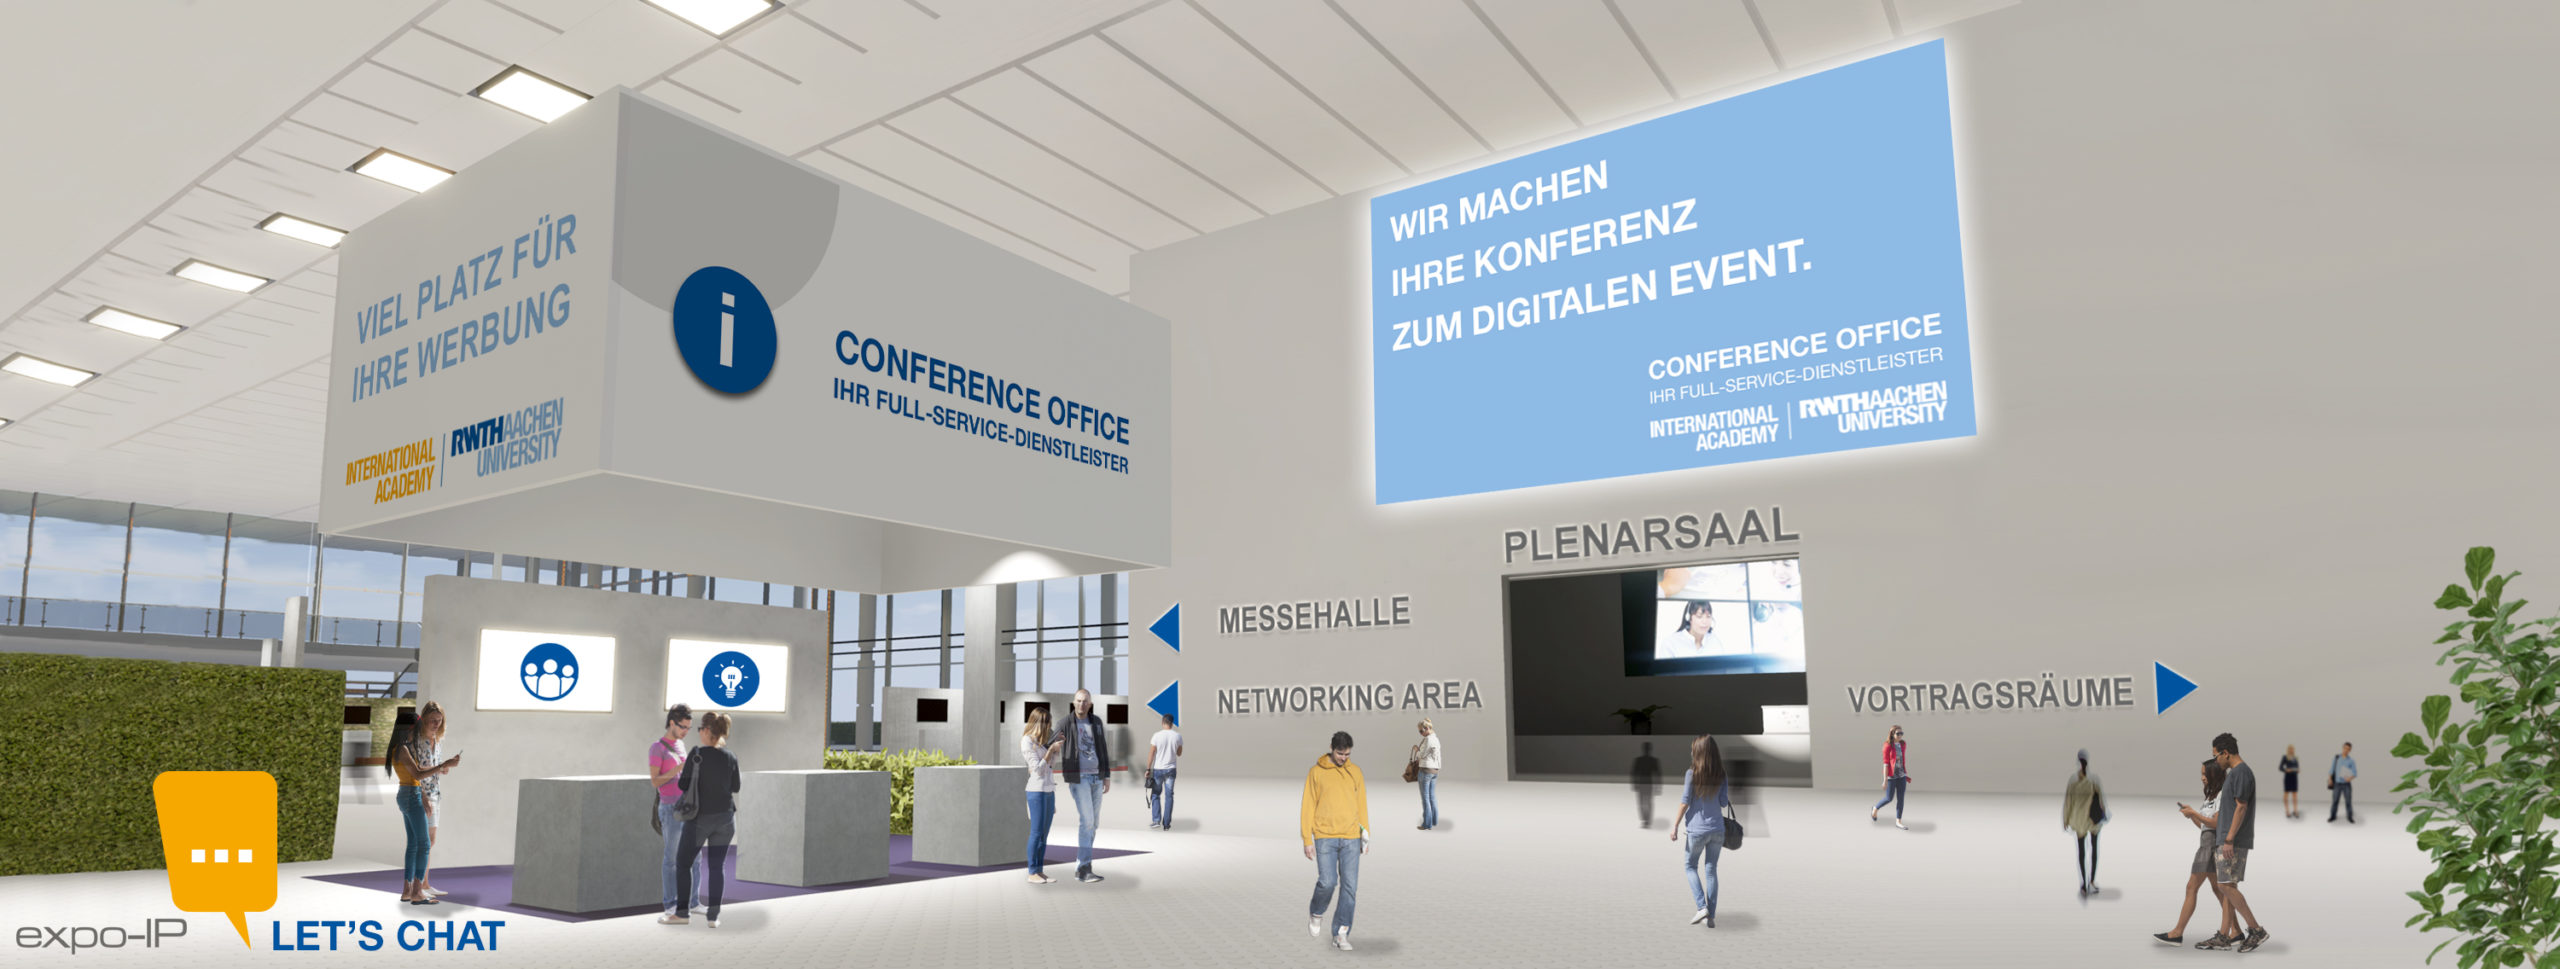 Digitale Konferenz RWTH International Academy Lobby